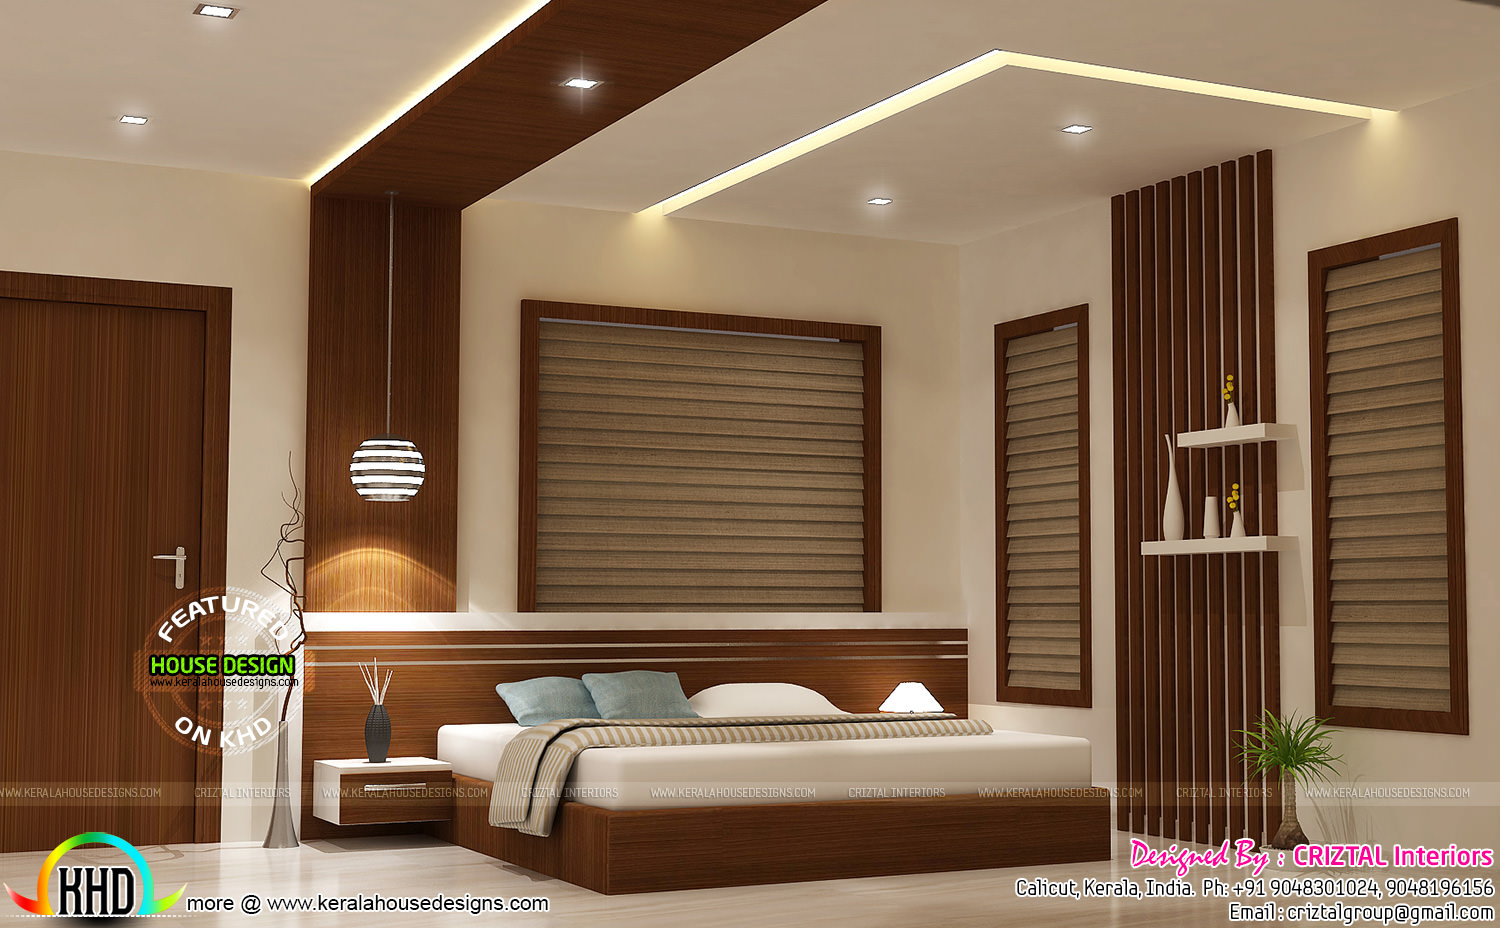 Bedroom dining hall and living interior kerala home Home interior design bedroom